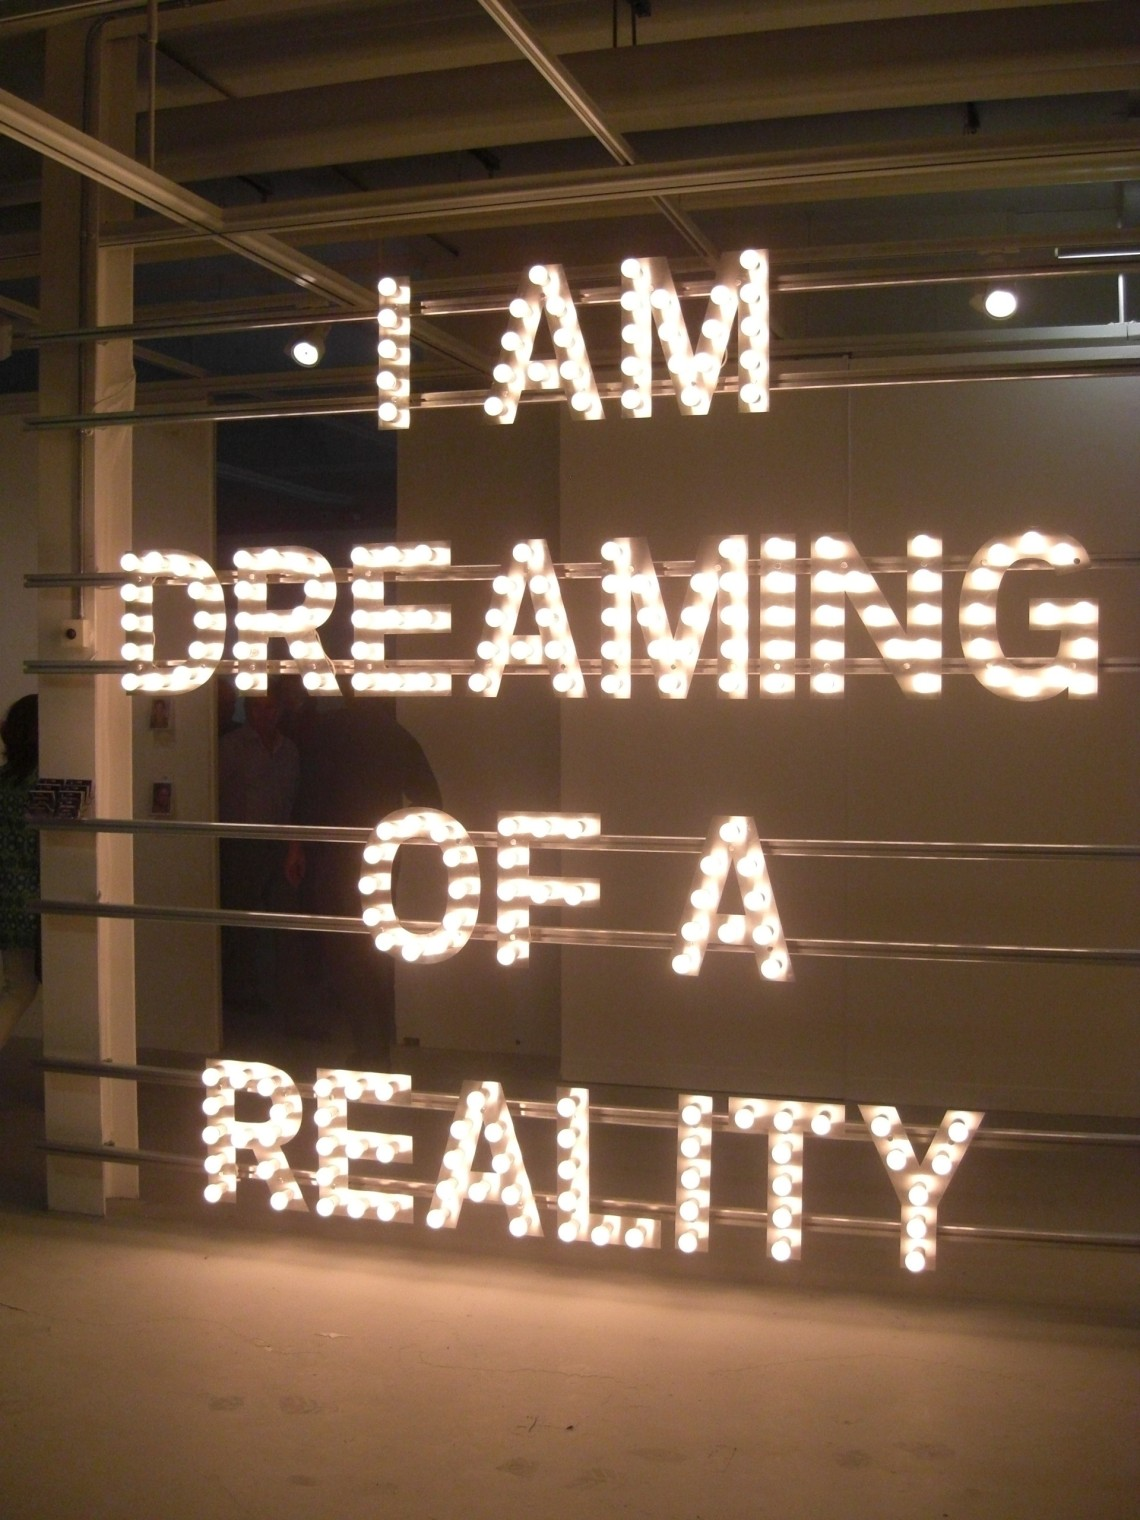 'I am Dreaming of a Reality' by Antonio D'Angelo (2010)